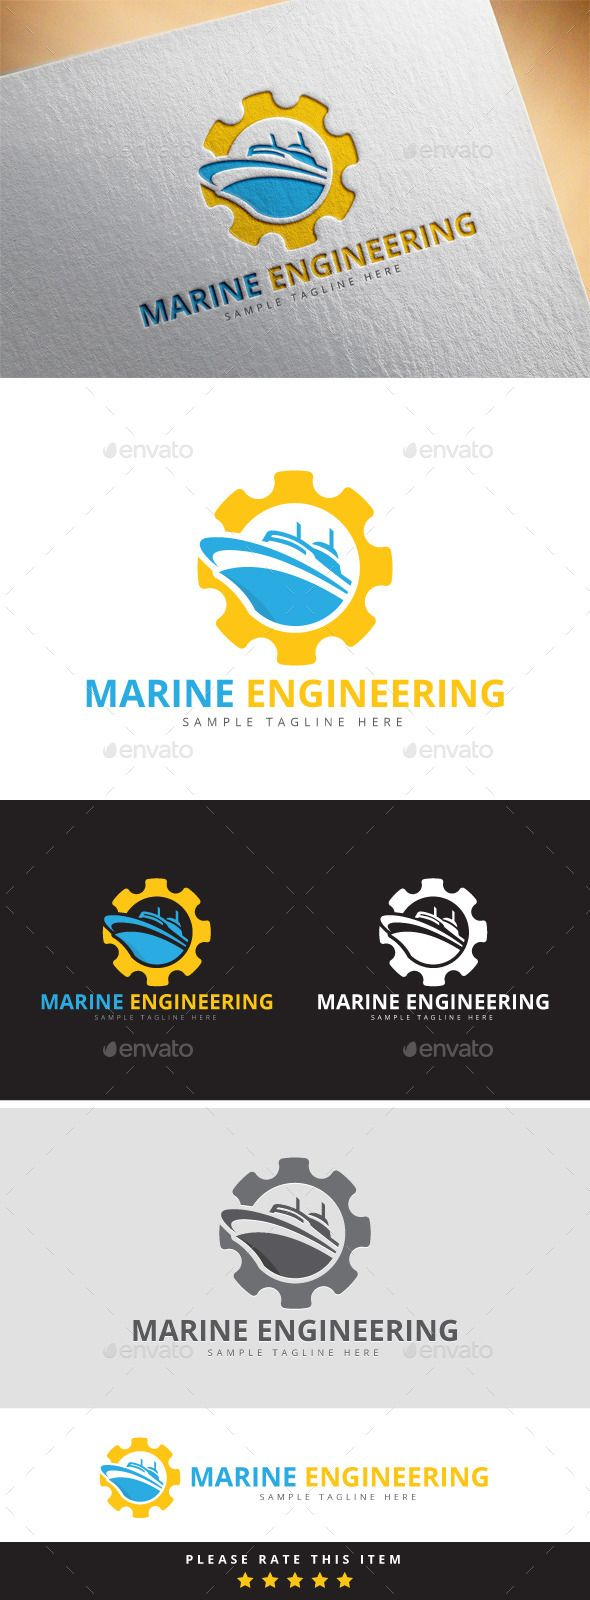 Marine Engineering Logo